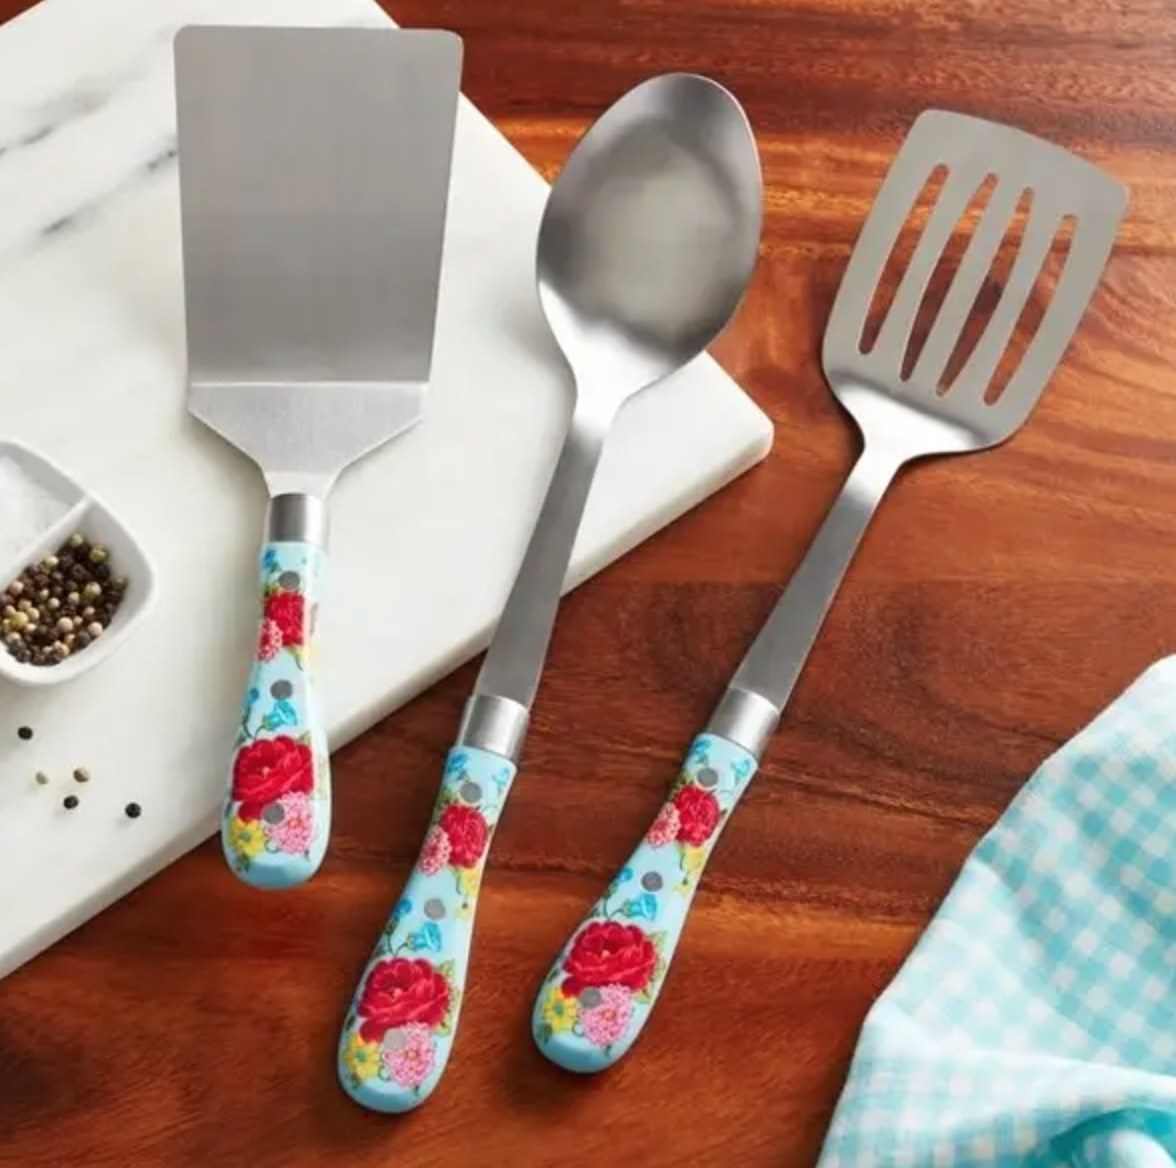 The floral-printed kitchen tools.